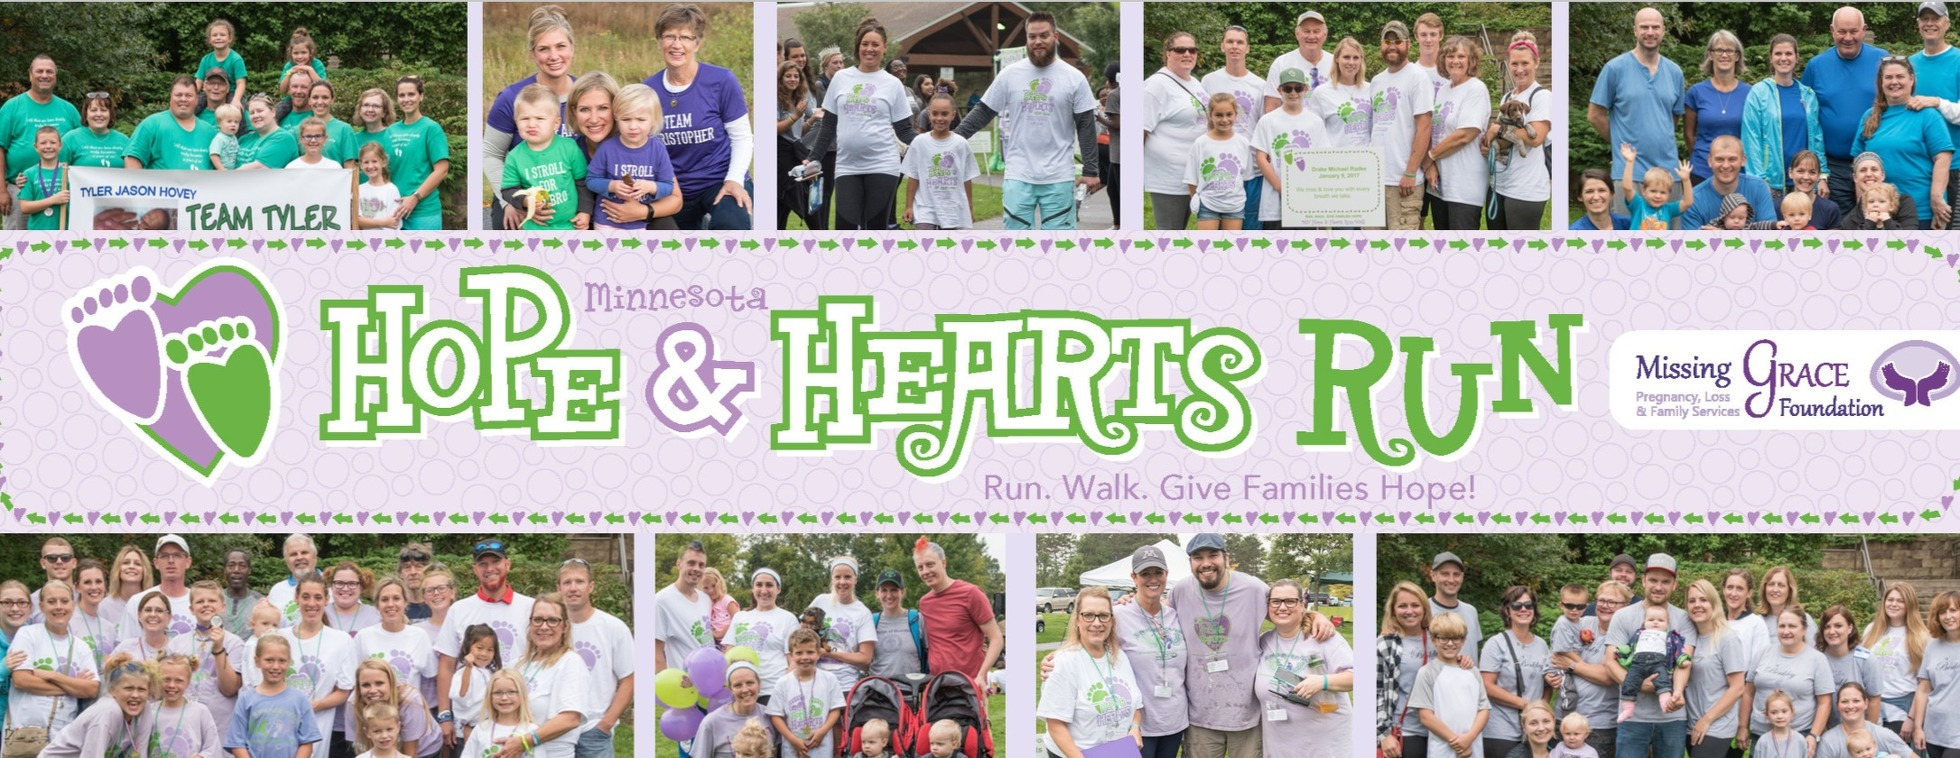 2018 Hope & Hearts Run/Walk